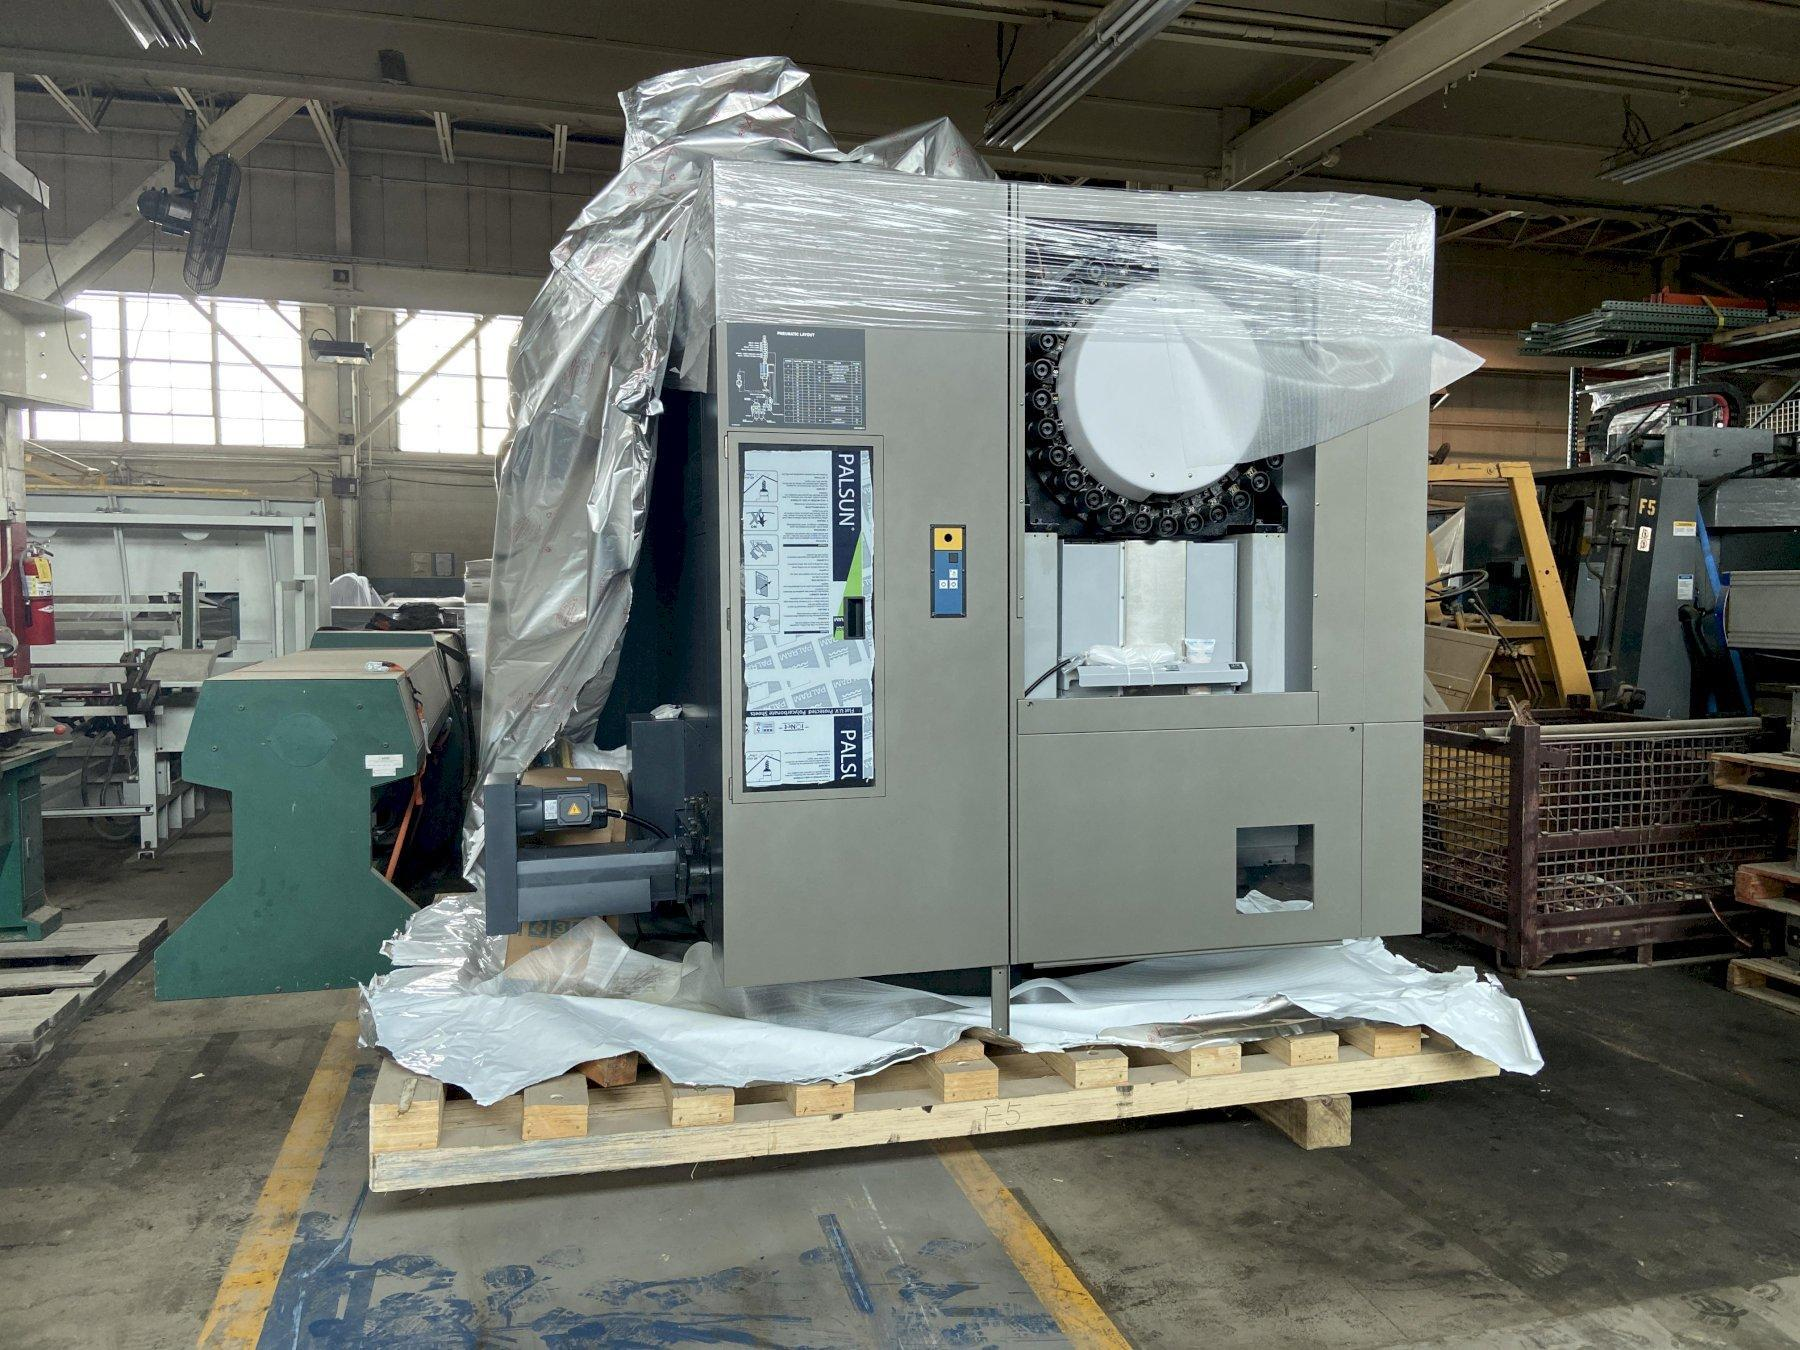 """Makino F5 CNC Vertical Machining Center, Pro 5 Control, 35""""/20""""/18"""" Travels, 20K Spindle, 30 ATC, Scales, Blum Laser and Probe, Graphite Package, New-In-Crate, 2019"""